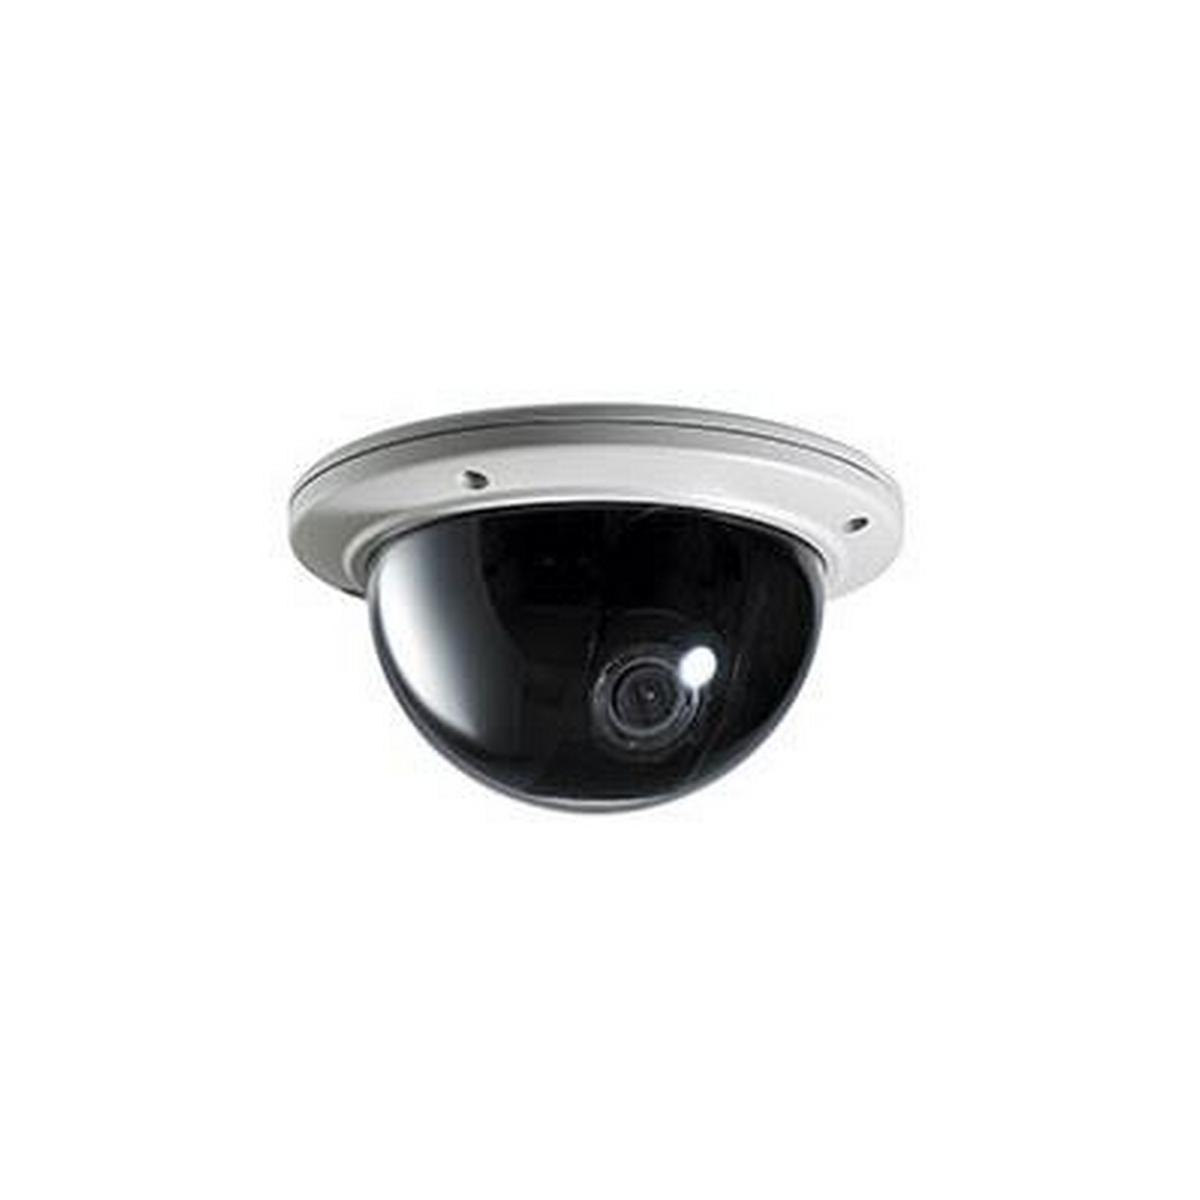 INDOOR/OUTDOOR WHITE DOME, 1/3 I-SNIPER PIXIM 960H IMAGE SENSOR, 690TV LINES, 3.3-12MM LENS, TRUE WDR, 12VDC/24VAC, NO POWER SUPPLY INCLUDED